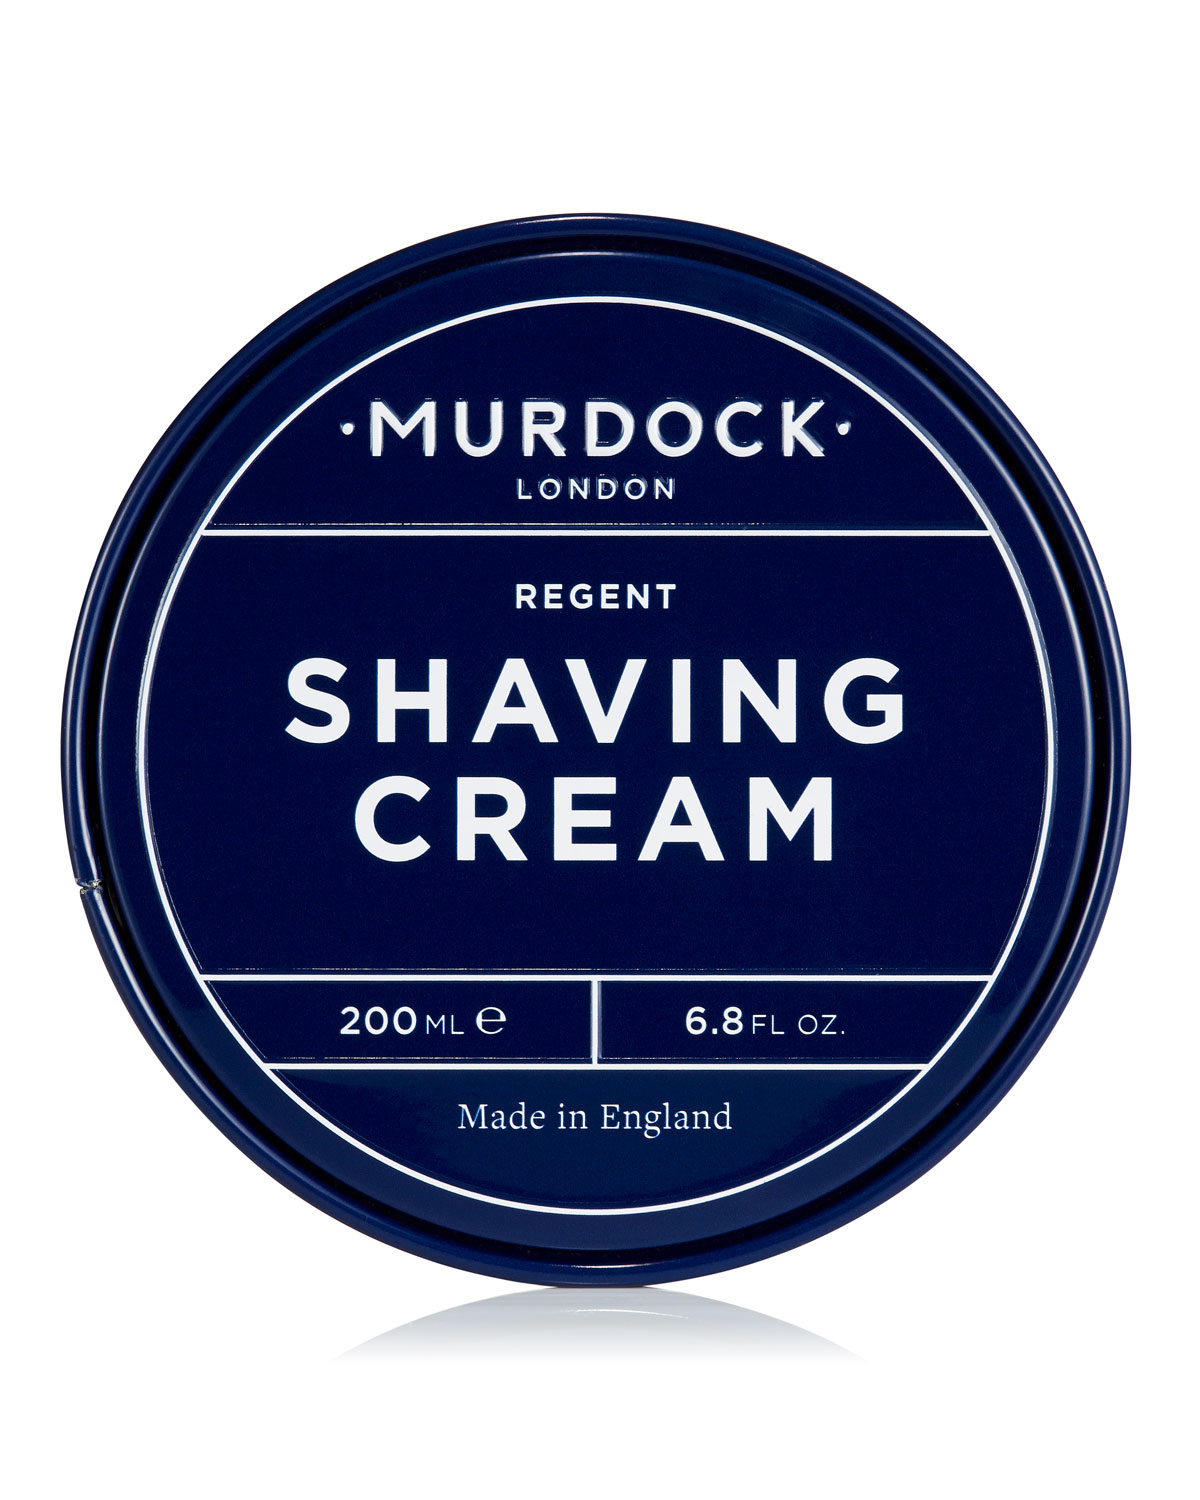 Murdock London 6.8 oz. Shaving Cream